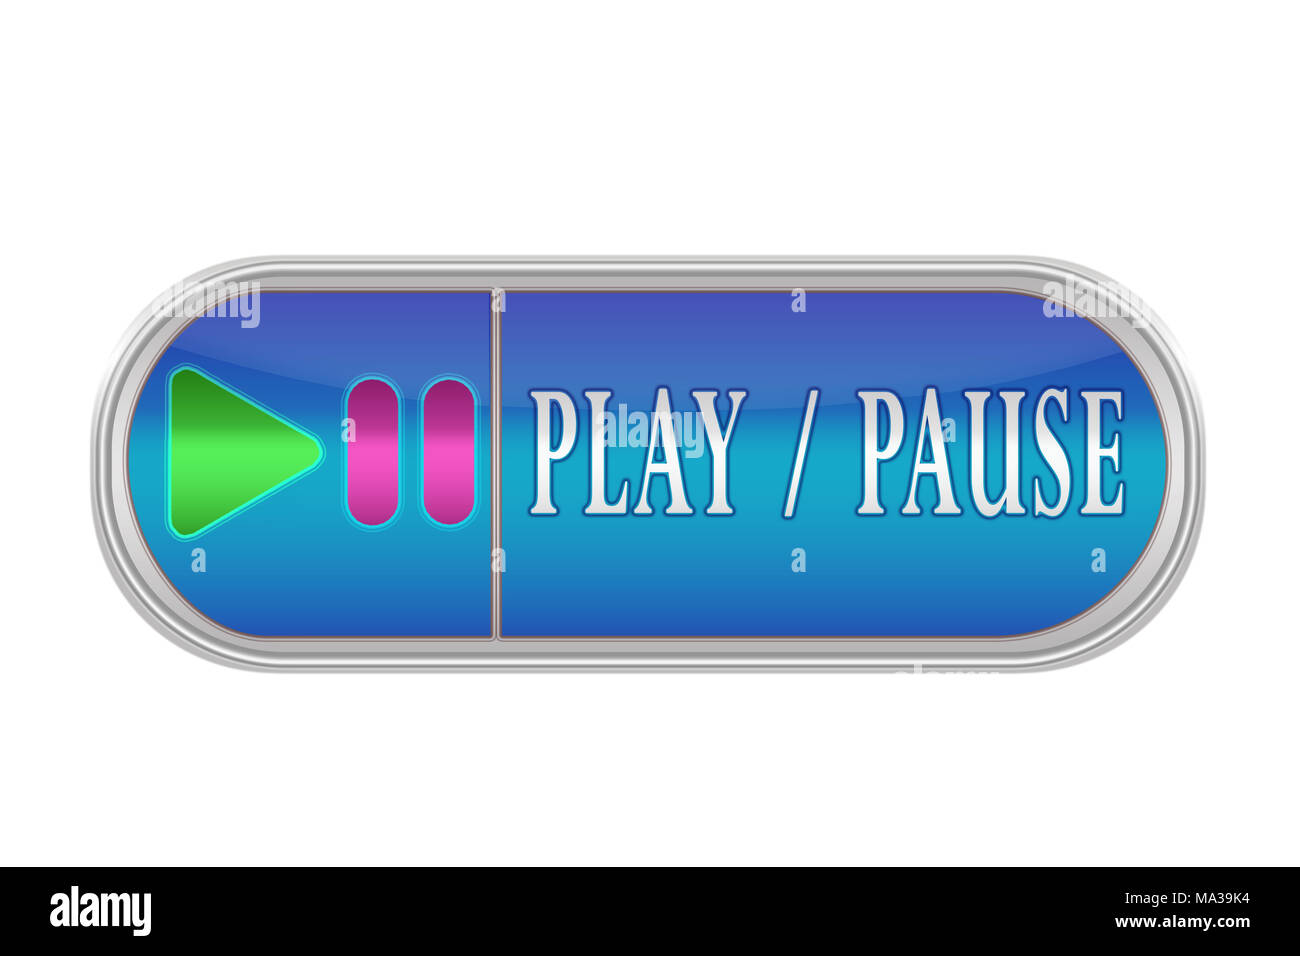 Oblong volume button of blue color with the icon and the inscription 'PLAY, PAUSE', white background - Stock Image